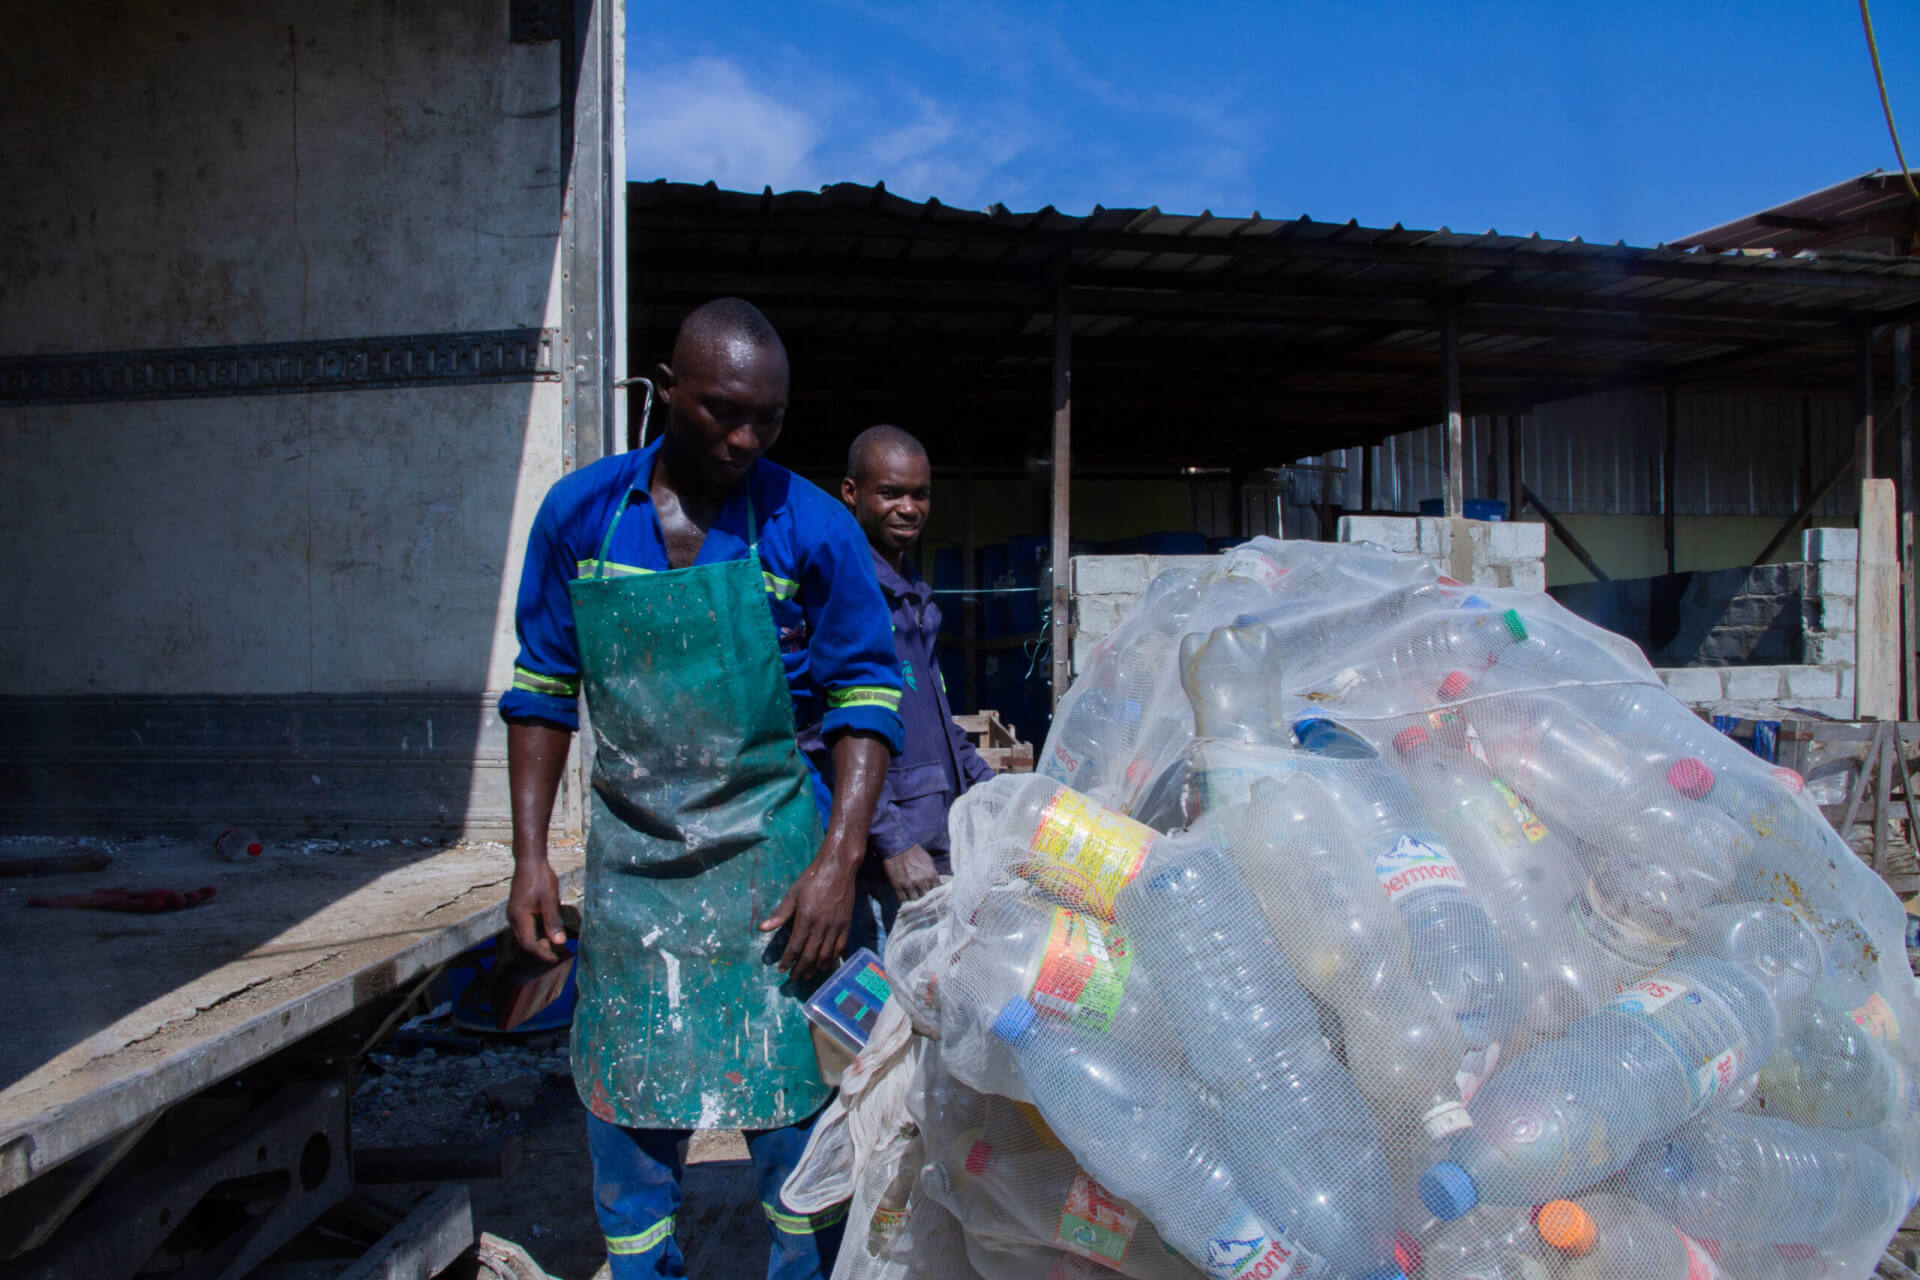 Sacks of PET bottles are unloaded from the truck